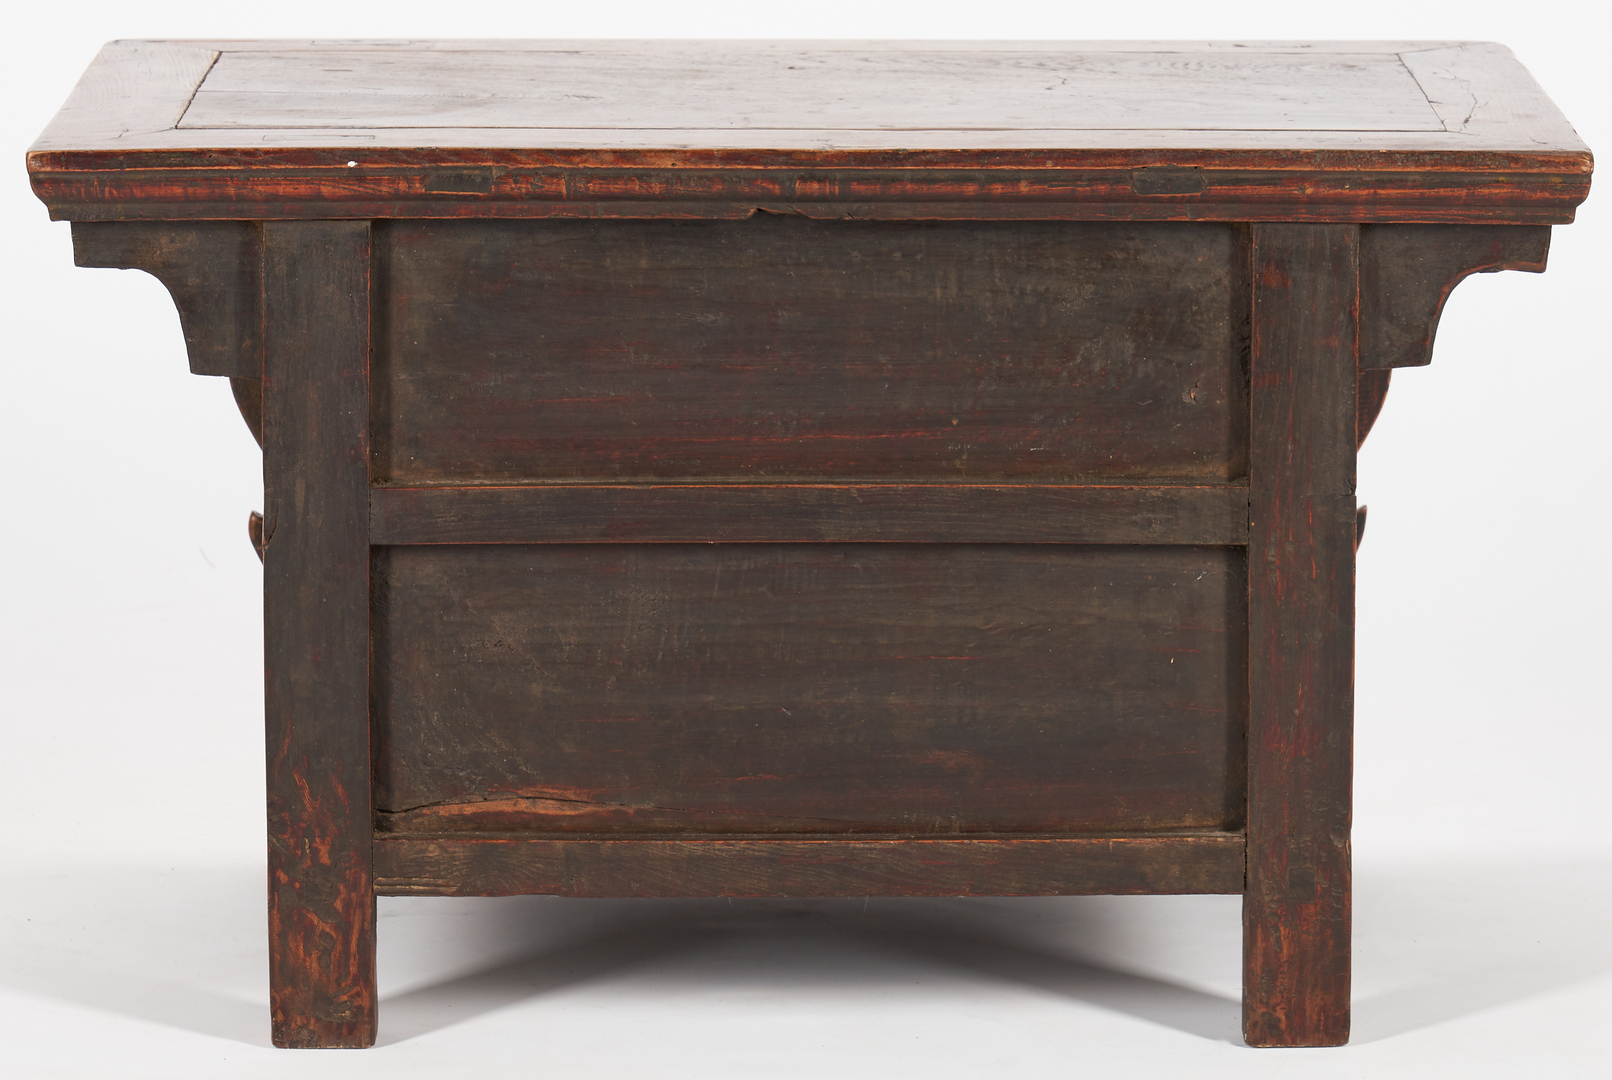 Lot 26: Chinese Stand, Chair and Cabinet with Secret Compartments